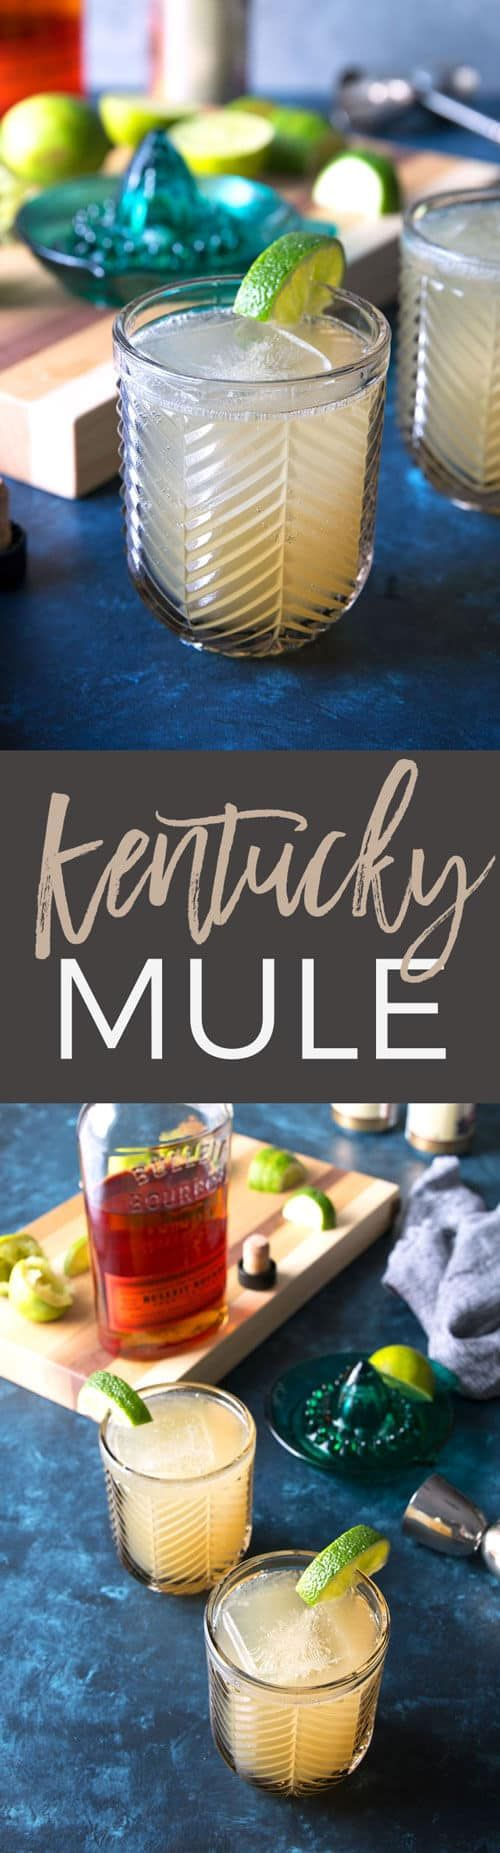 This Kentucky Mule is a delicious twist on a traditional Moscow Mule cocktail. Kentucky bourbon, ginger beer and fresh squeezed lime juice make this an easy 3-ingredient cocktail, perfect for any party and any season. #bourbon #cocktail #drink #recipe #summer #kentuckyderby